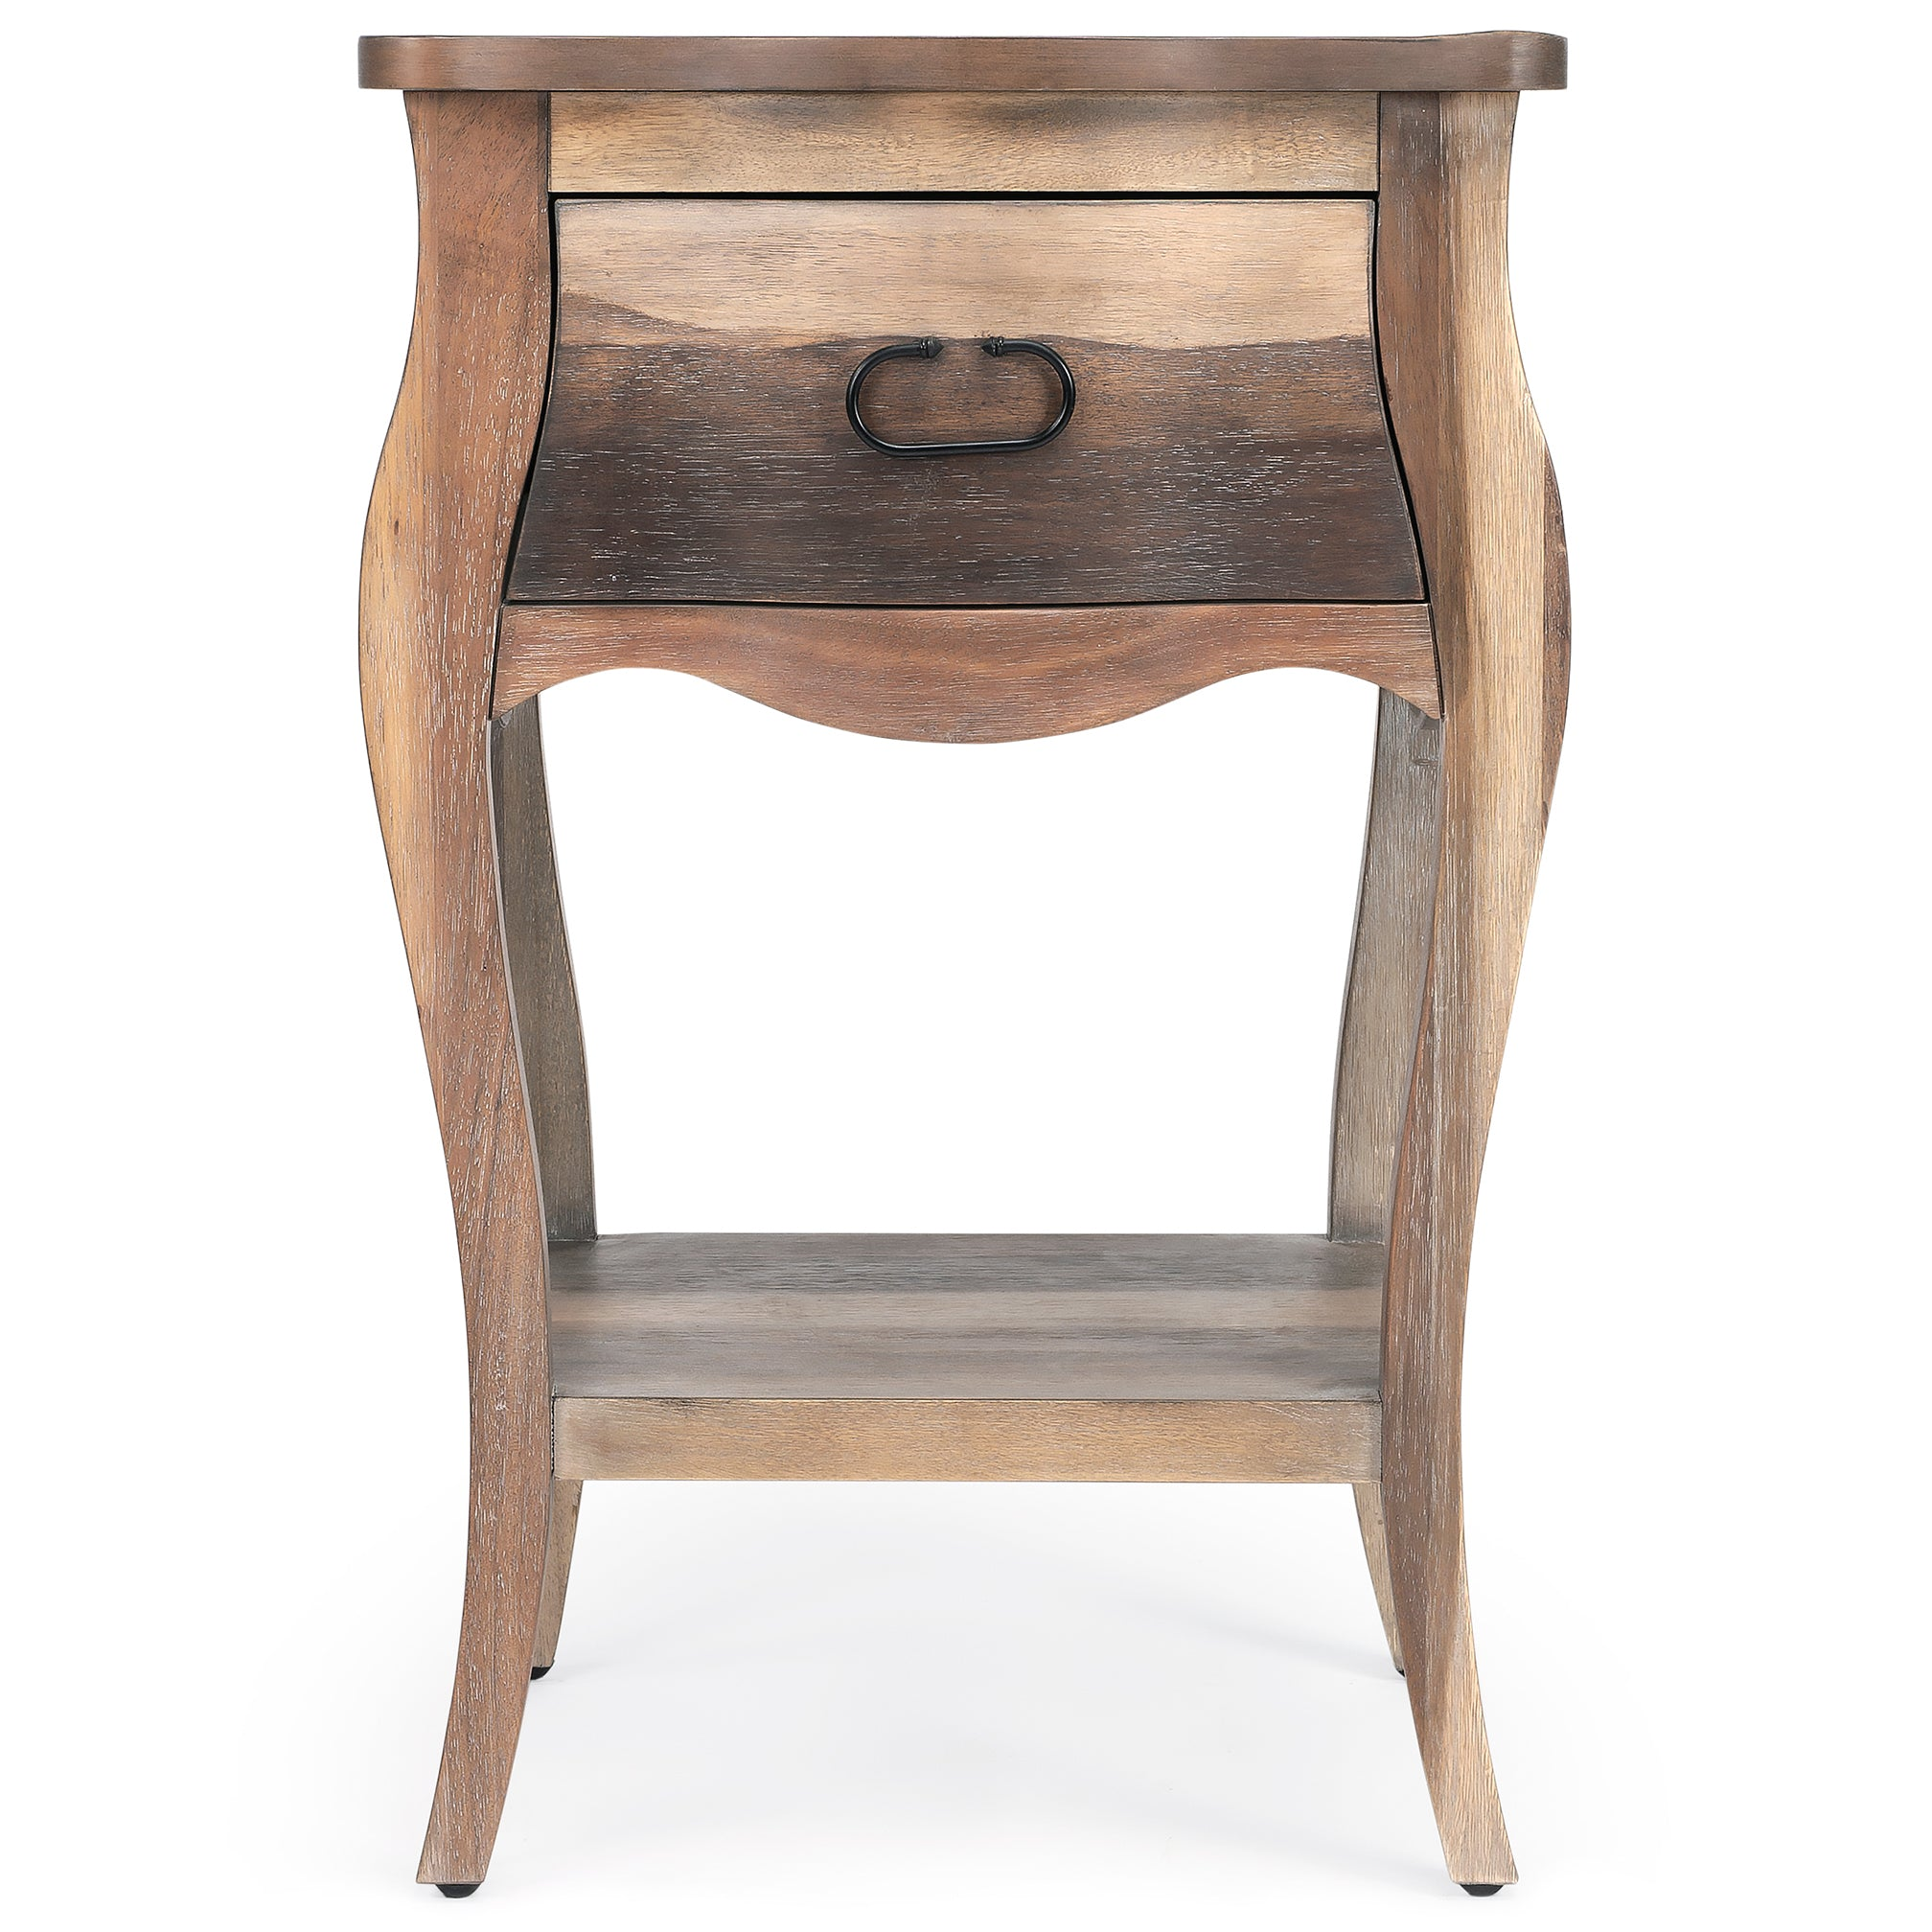 Rustic Wood Farmhouse Nightstand End Table